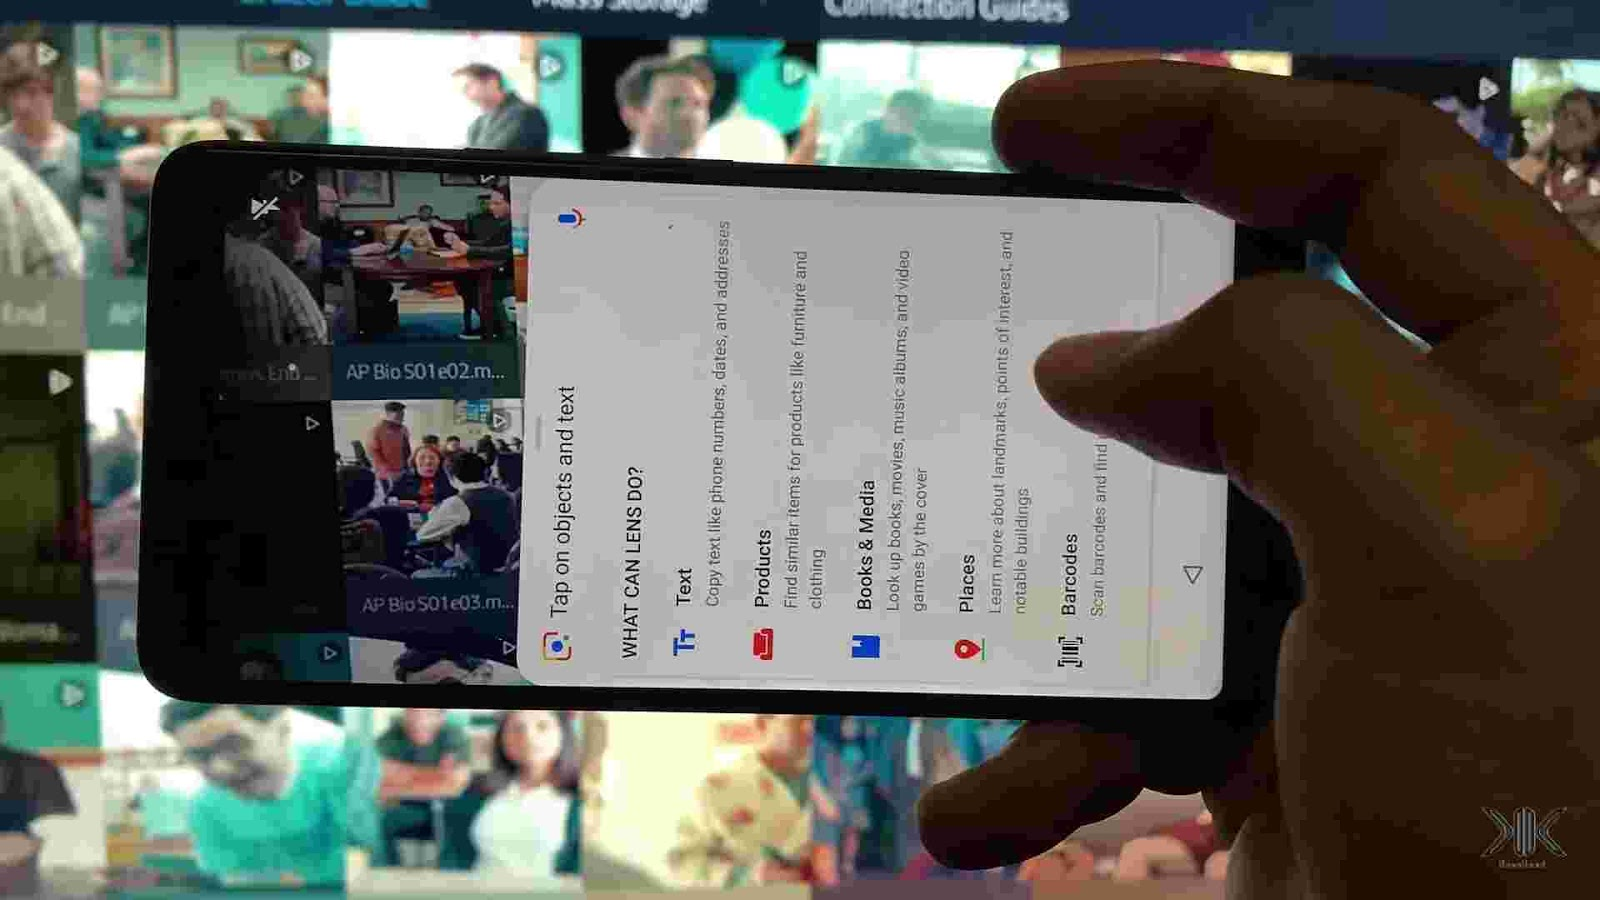 Google Lens text recognition and translator